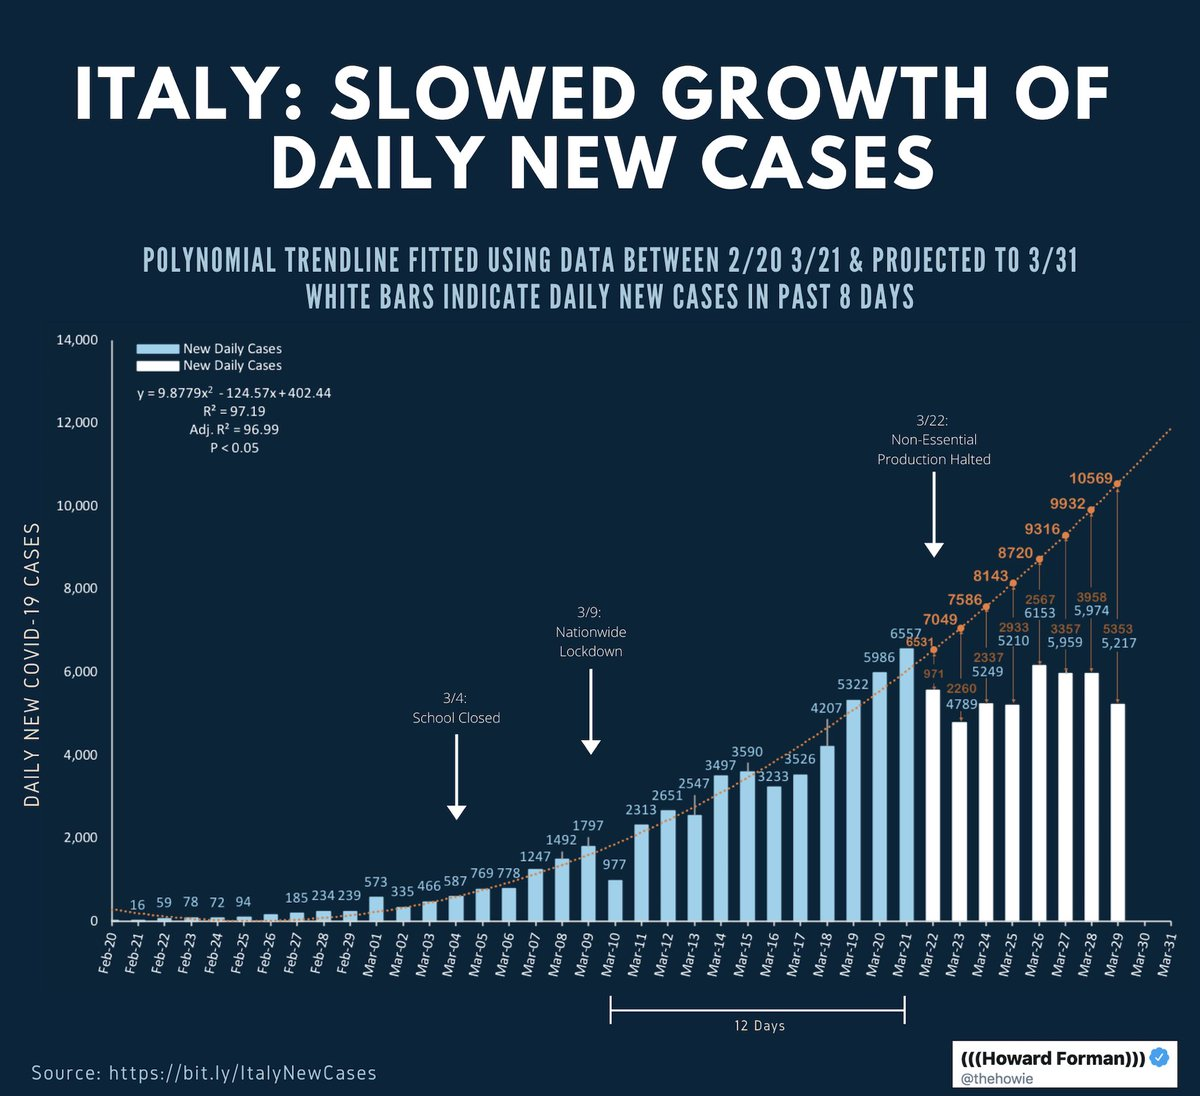 Very compelling visual evidence (using a VERY conservative ex ante case growth curve) of the impact of #SocialDistancing on the #Covid19 outbreak in #Italy. #6ftApartNOTUnder .   Reminder that we would expect to see more impact on April 3/4 when last policy measure will be felt.